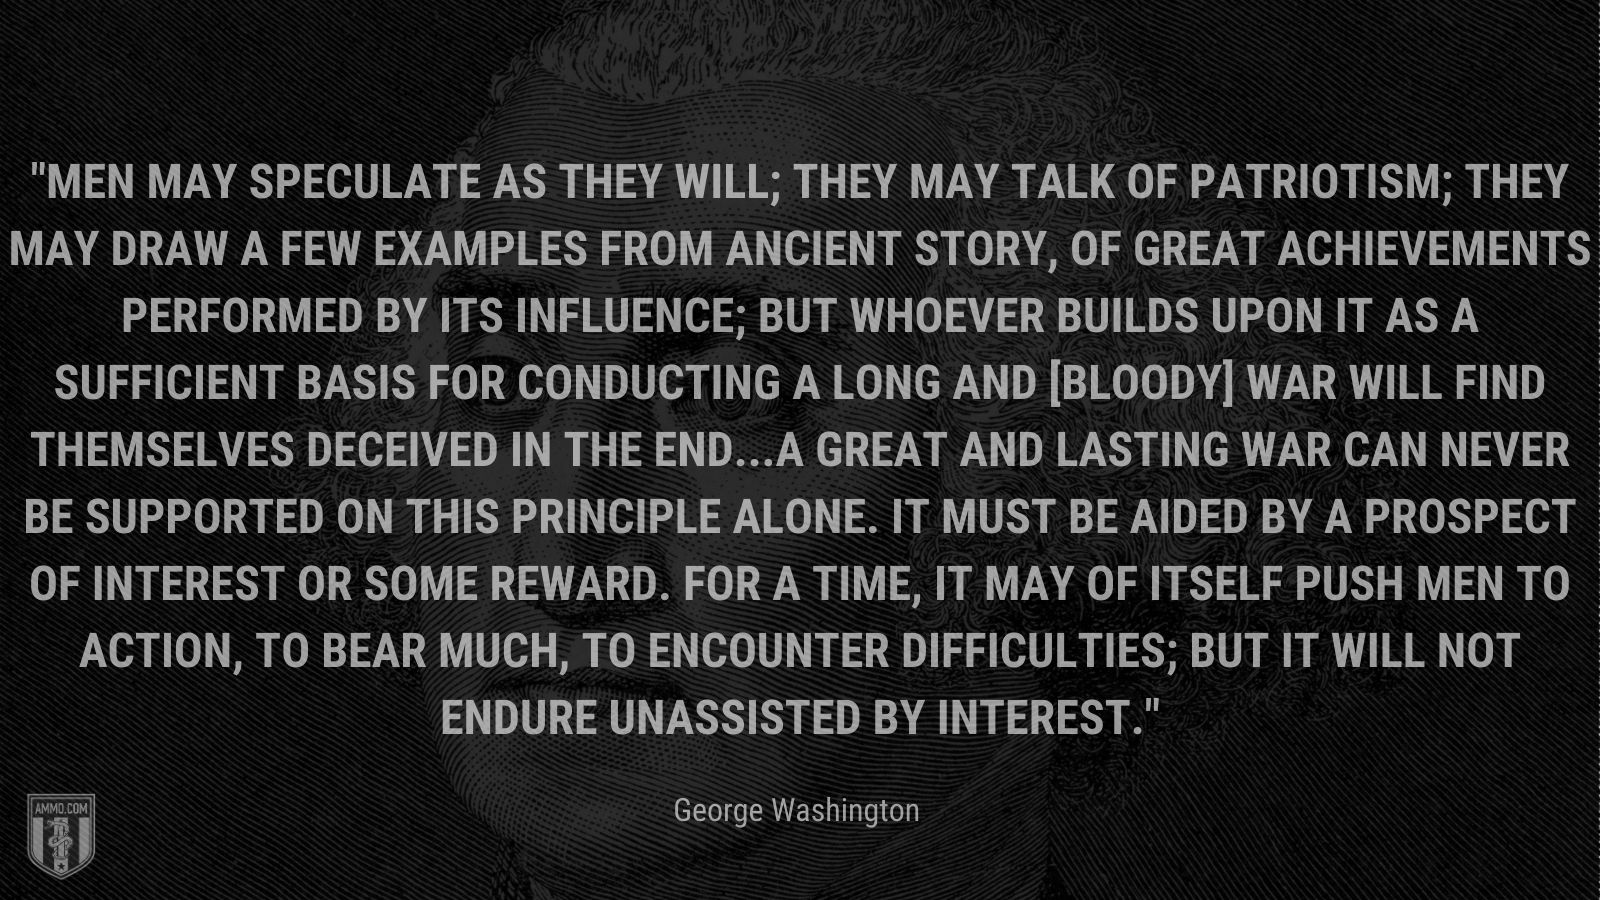 """""""Men may speculate as they will; they may talk of patriotism; they may draw a few examples from ancient story, of great achievements performed by its influence; but whoever builds upon it as a sufficient Basis for conducting a long and [bloody] War will find themselves deceived in the end...A great and lasting War can never be supported on this principle alone. It must be aided by a prospect of Interest or some reward. For a time, it may of itself push Men to Action, to bear much, to encounter difficulties; but it will not endure unassisted by Interest."""" - George Washington"""